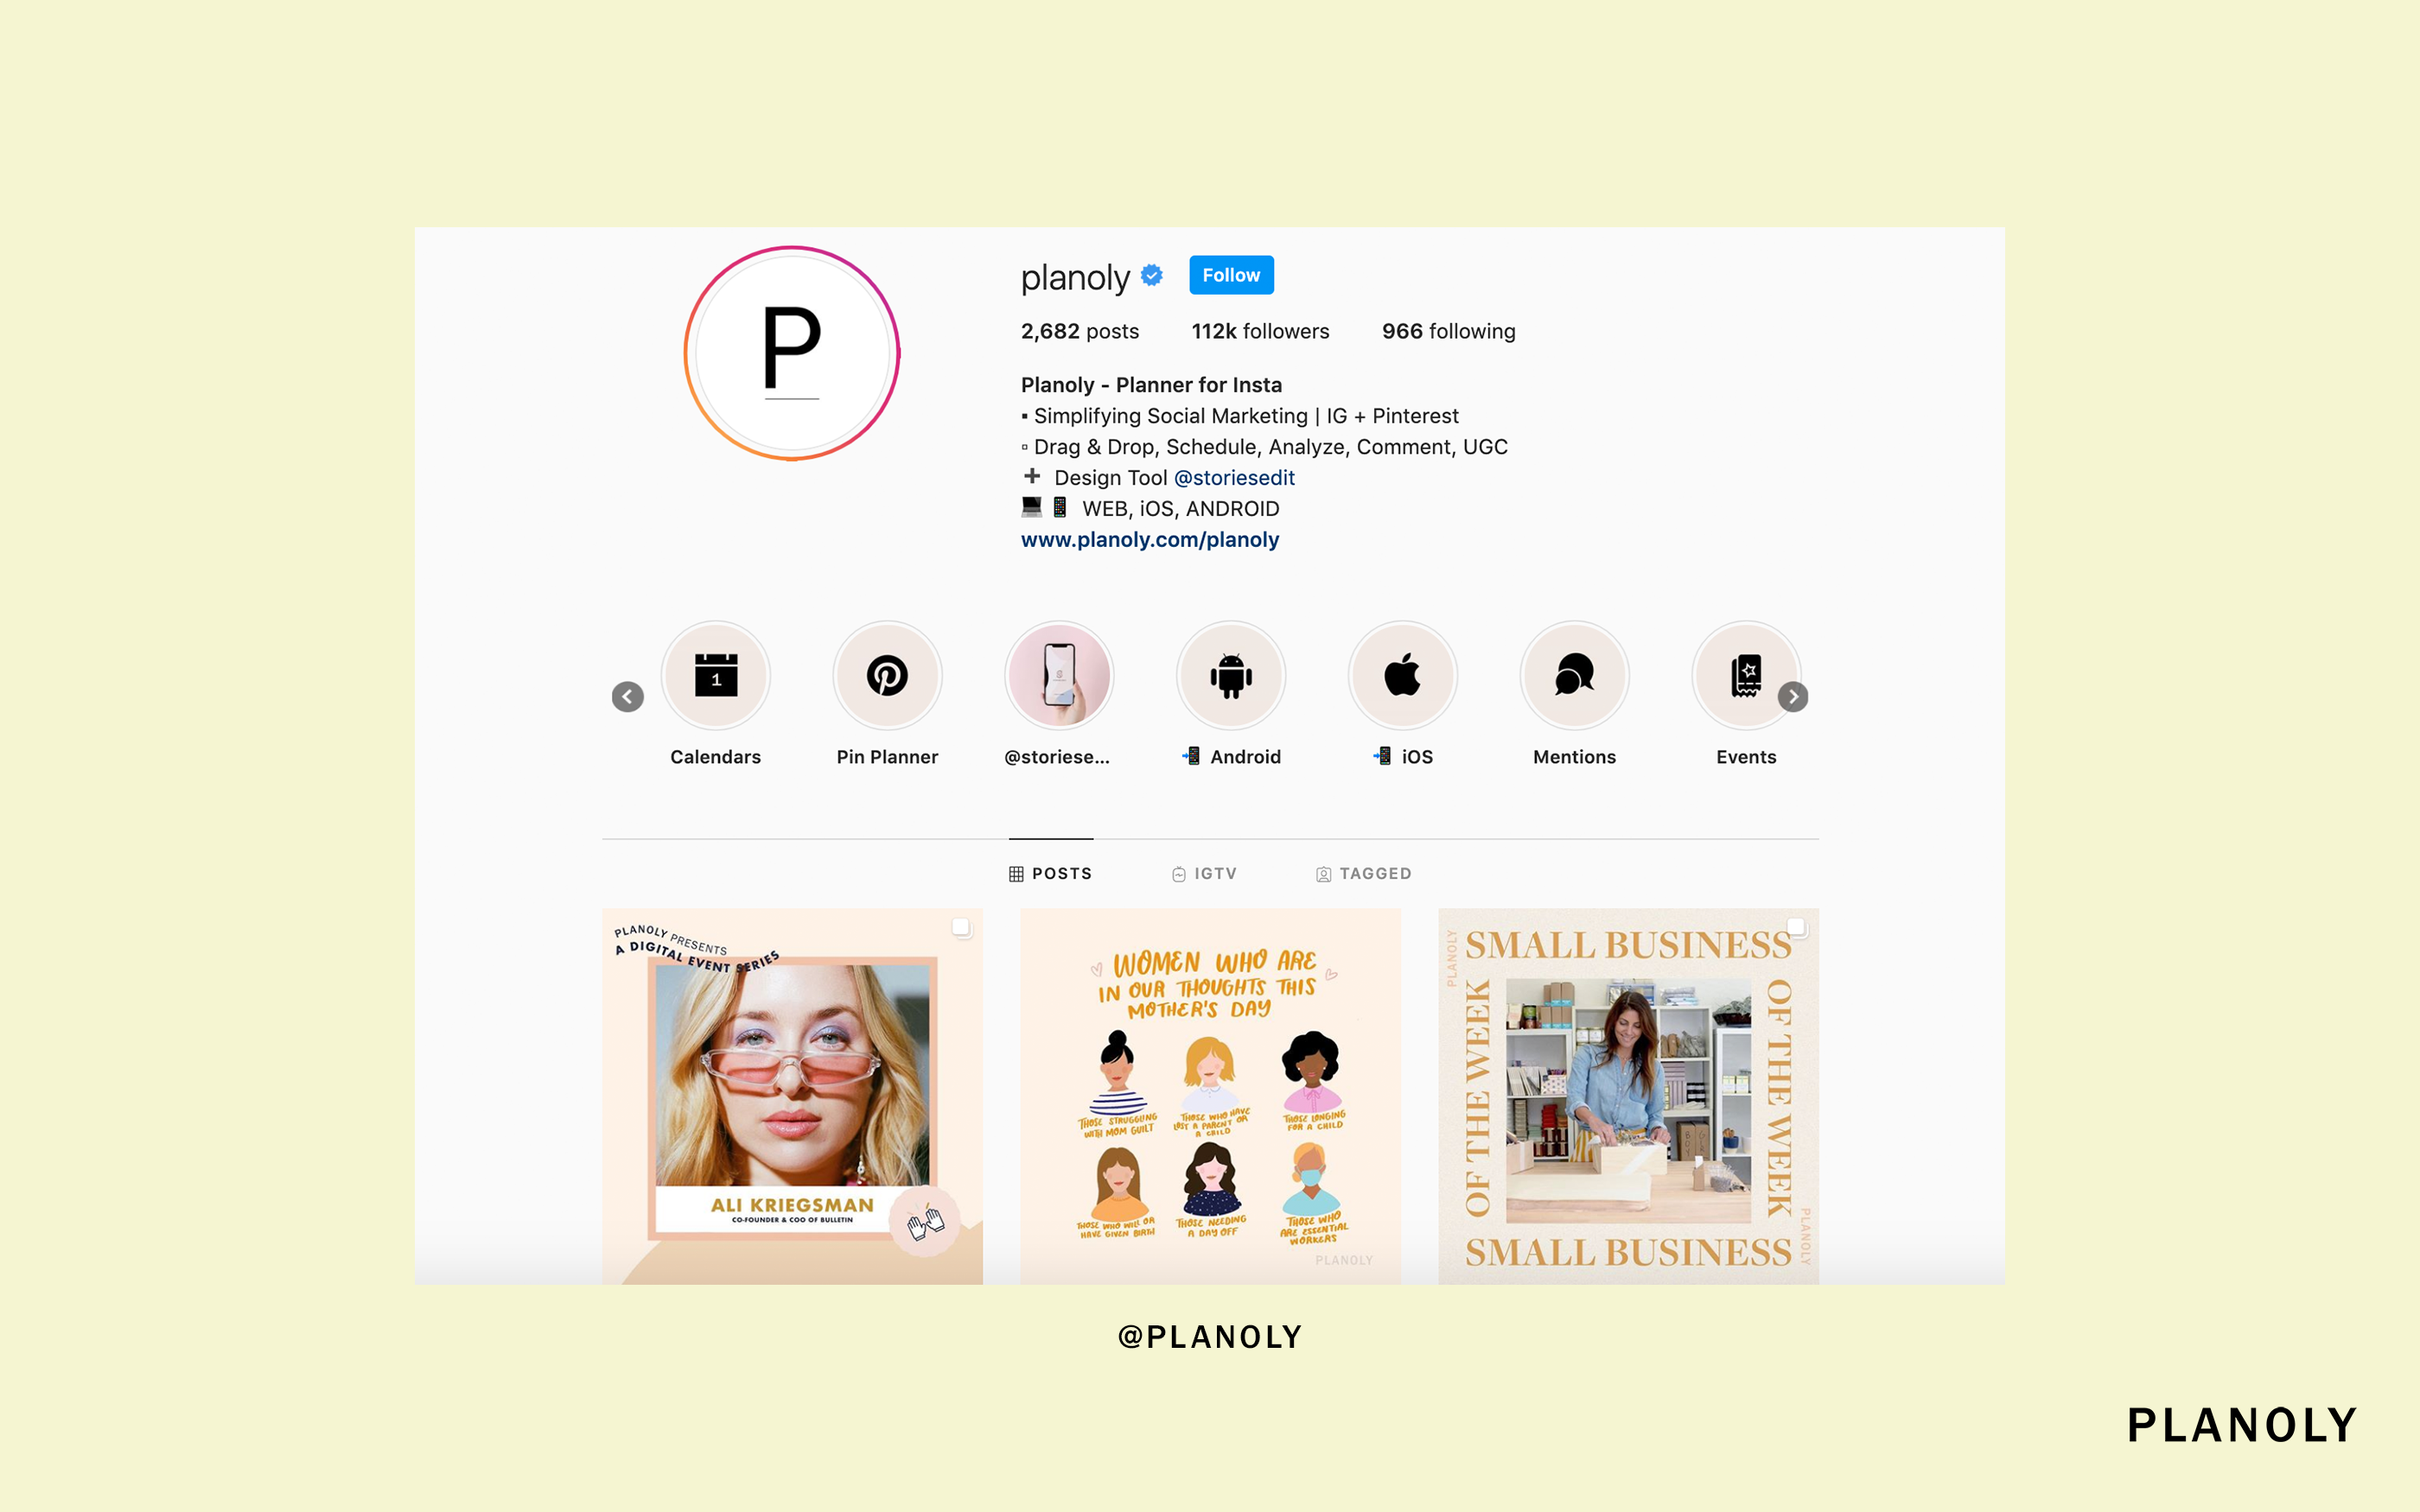 PLANOLY - Blog Post - How to Create Instagram Stories Highlights That Serve Your Customers - Image 6